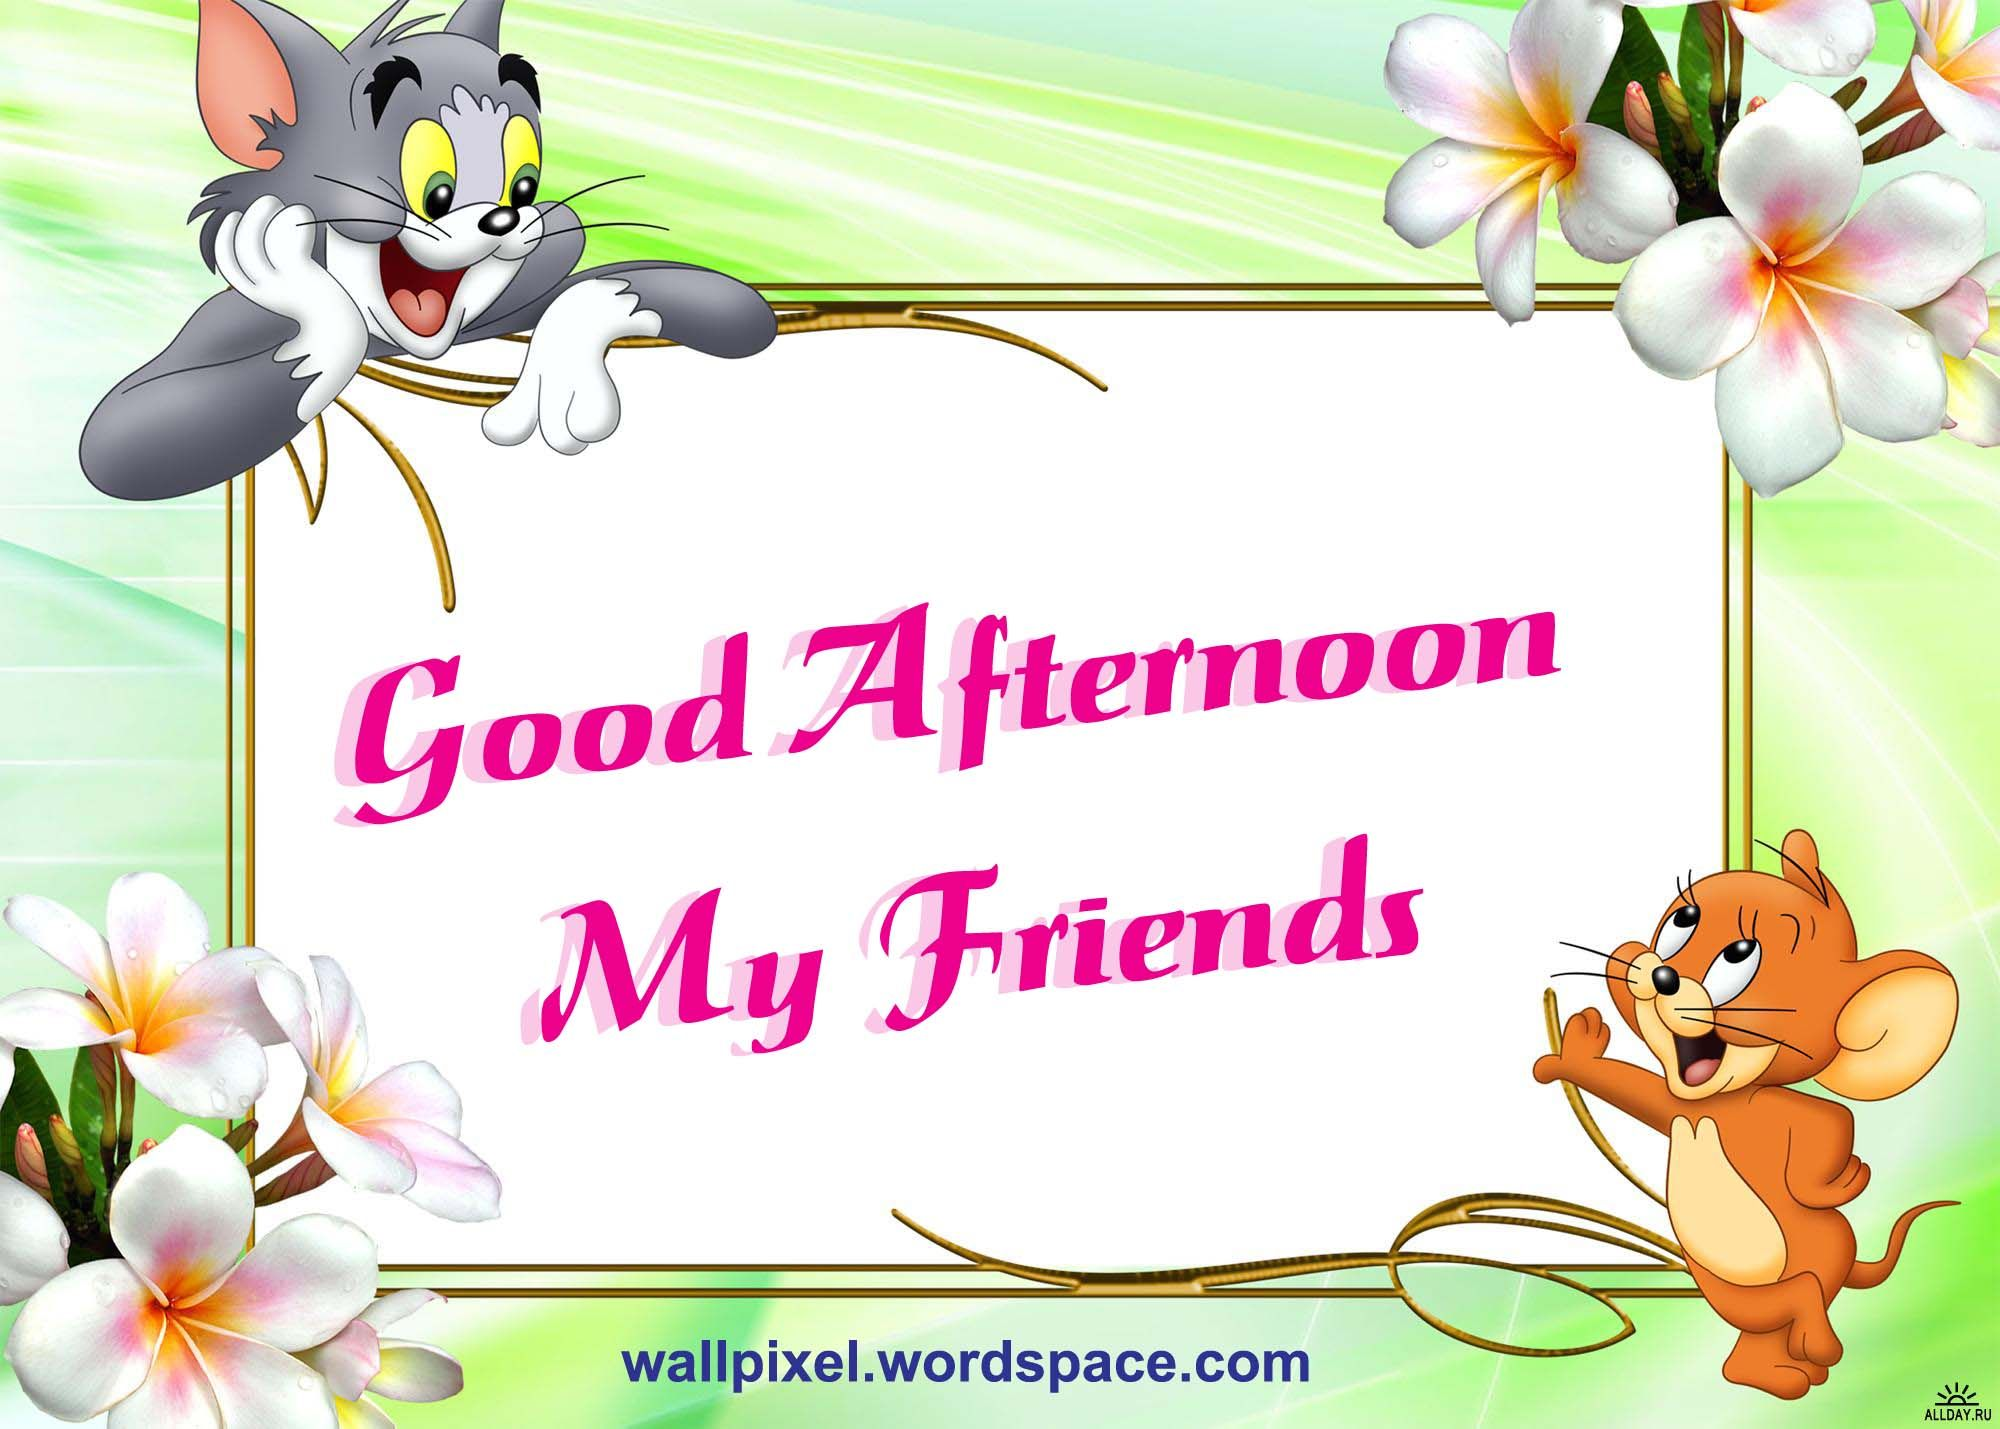 Good Afternoon My Friends Pictures, Photos, and Images for